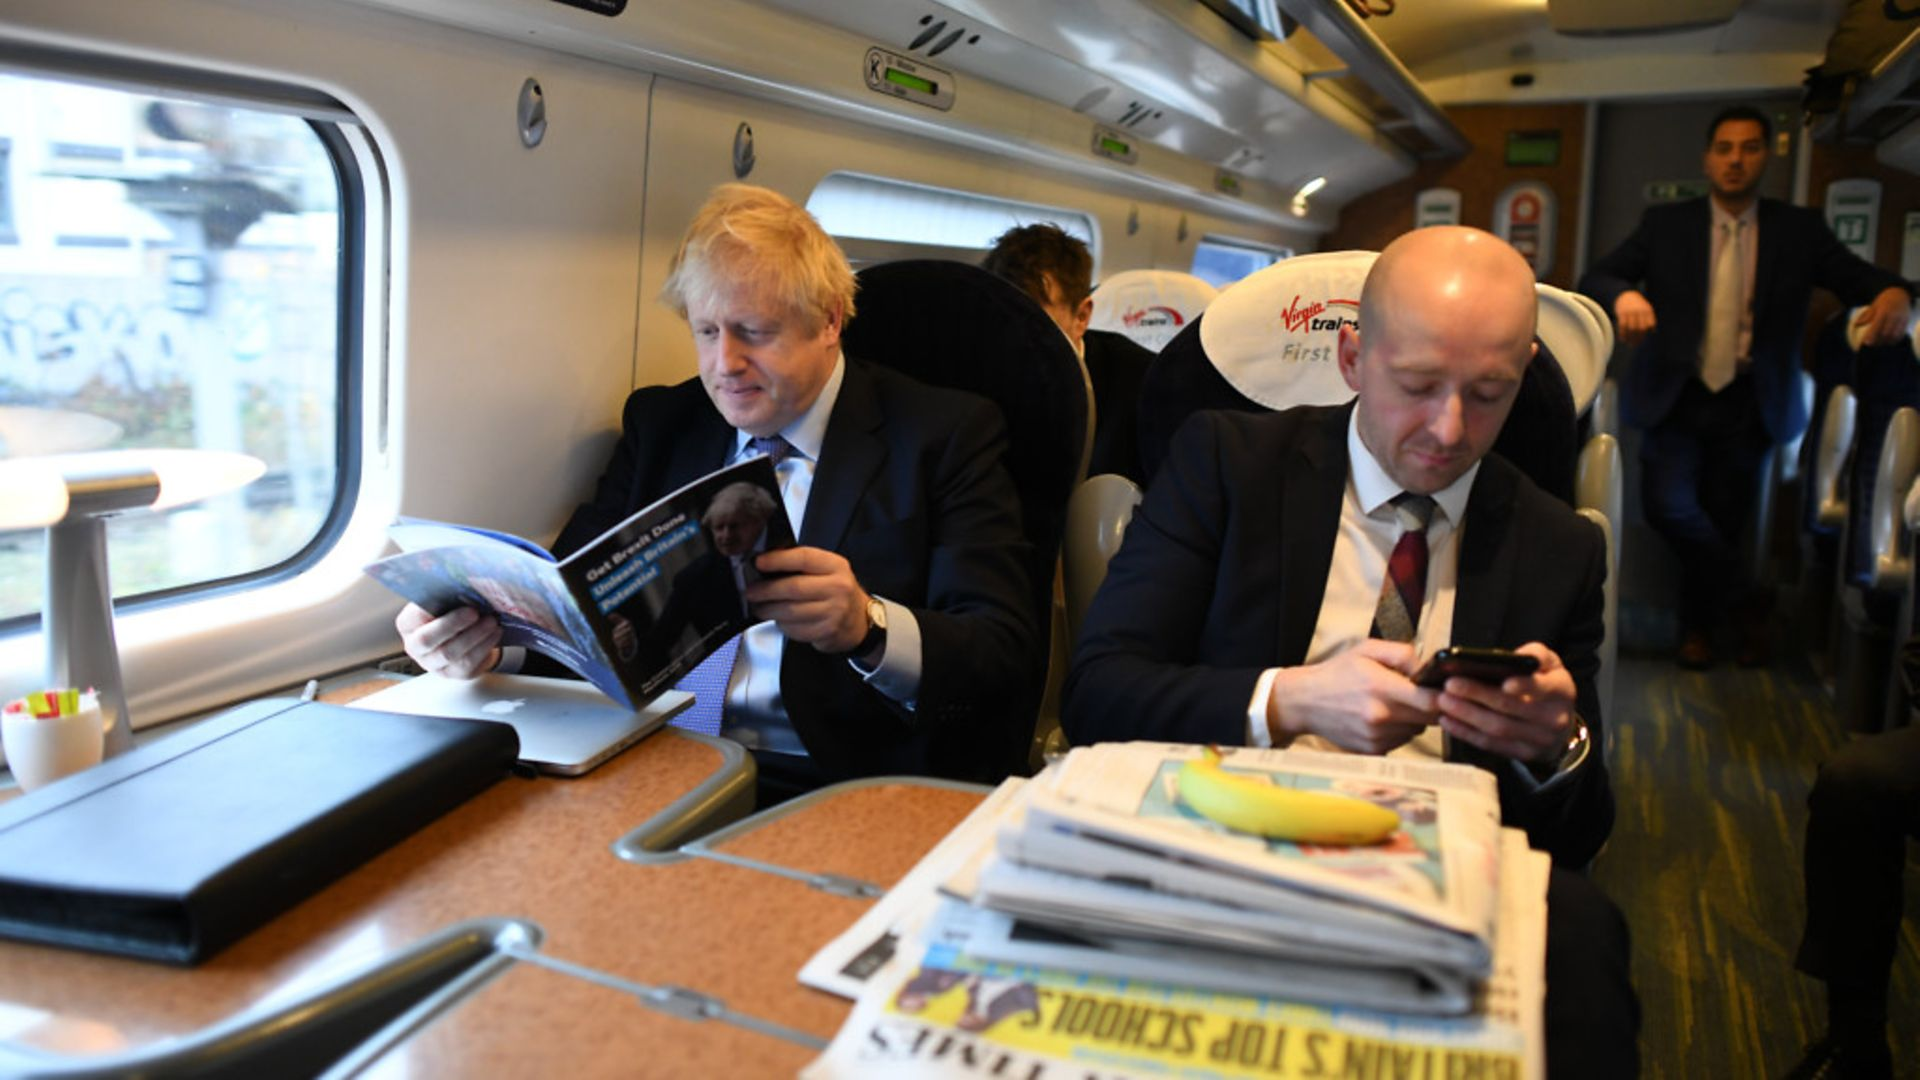 Boris Johnson, sitting with his former Director of Communications, Lee Cain (right), with a stack of newspapers on the train. - Credit: PA Wire/PA Images